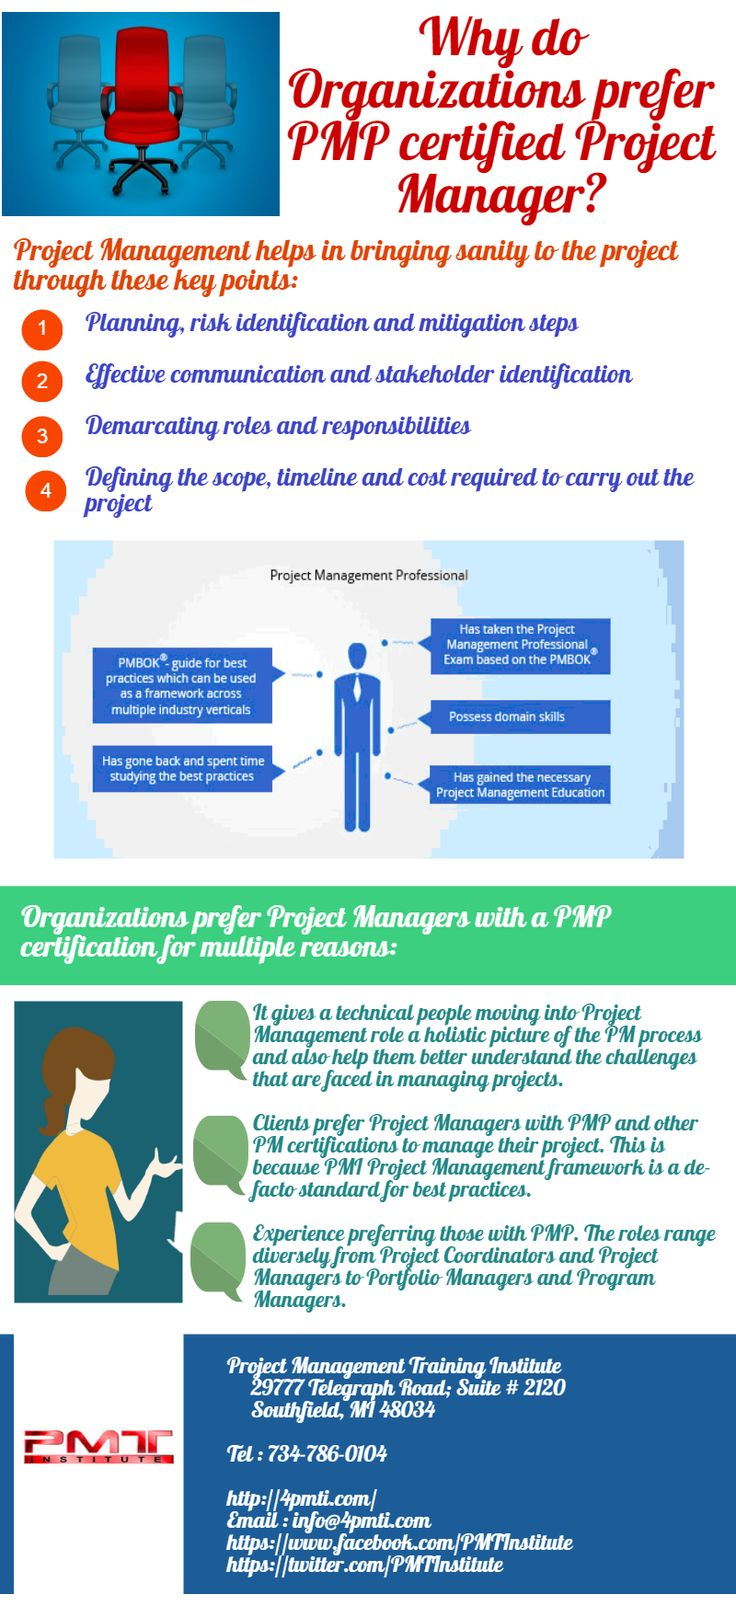 18 best project management training institute images on pinterest why do organizations prefer pmp certified project manager 1betcityfo Images